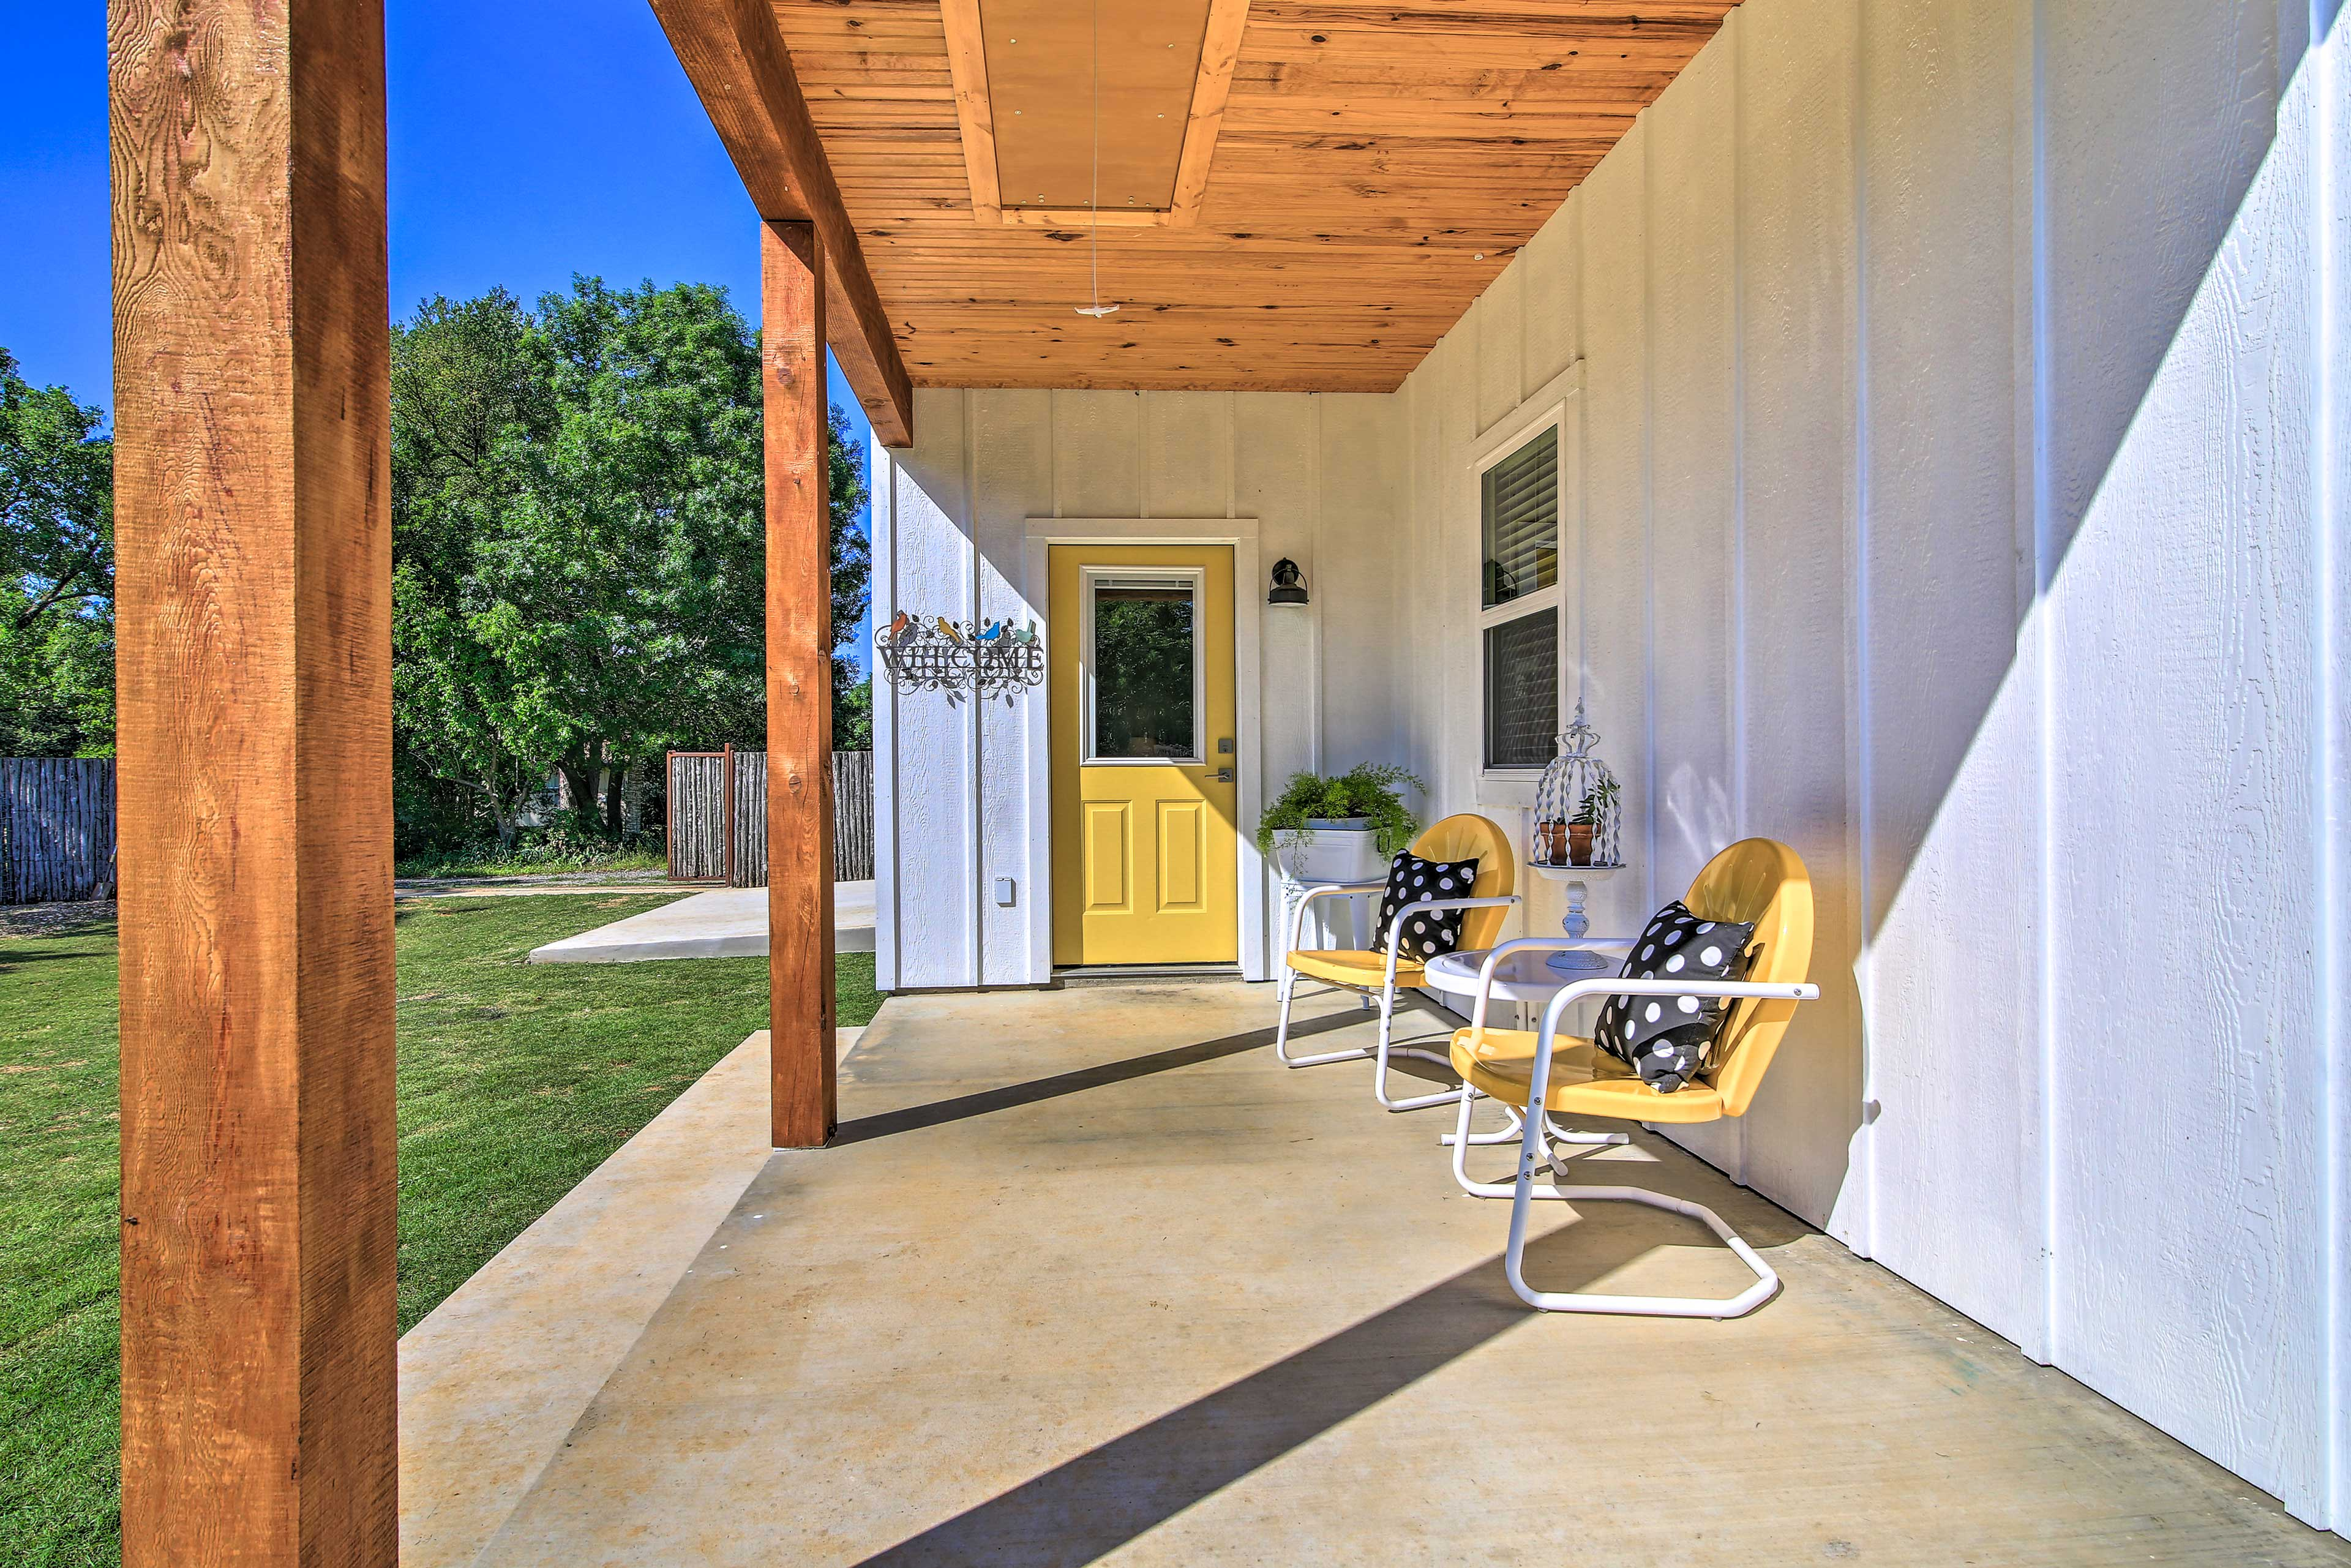 Kick back and relax on the furnished front patio.